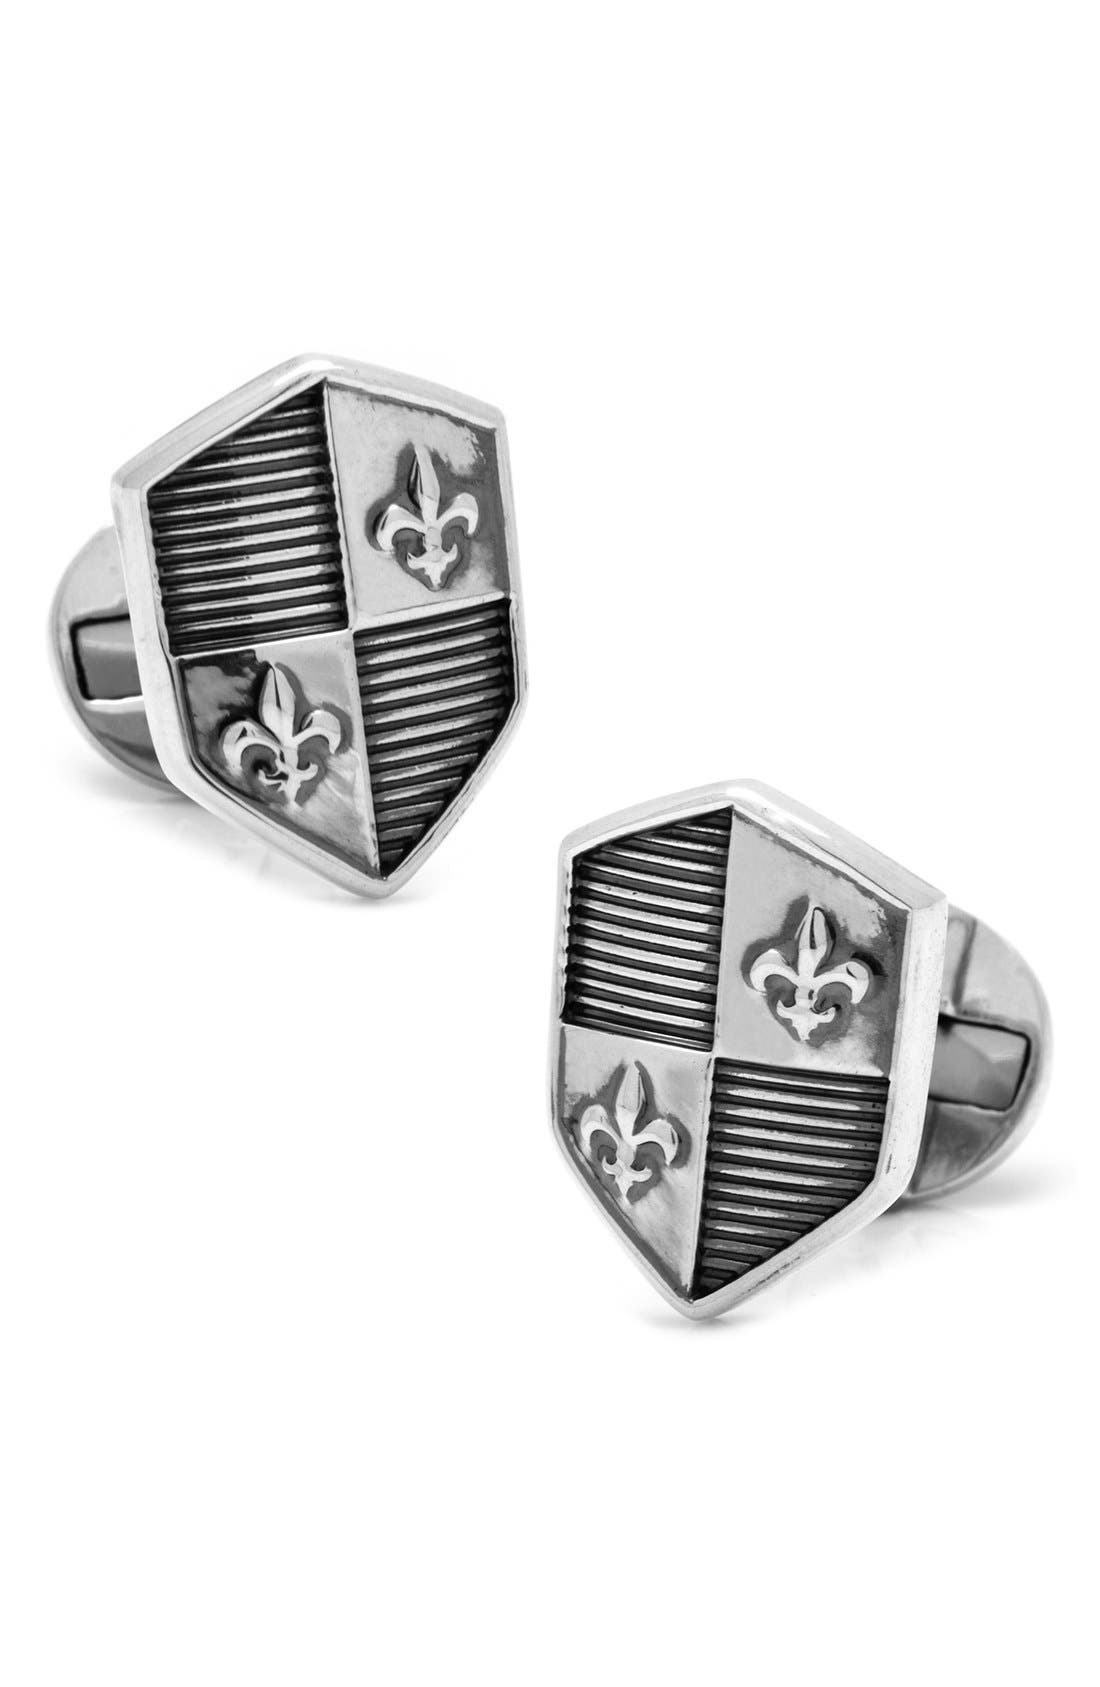 OX AND BULL TRADING CO. Cuffilnks, Inc. Shield Cuff Links